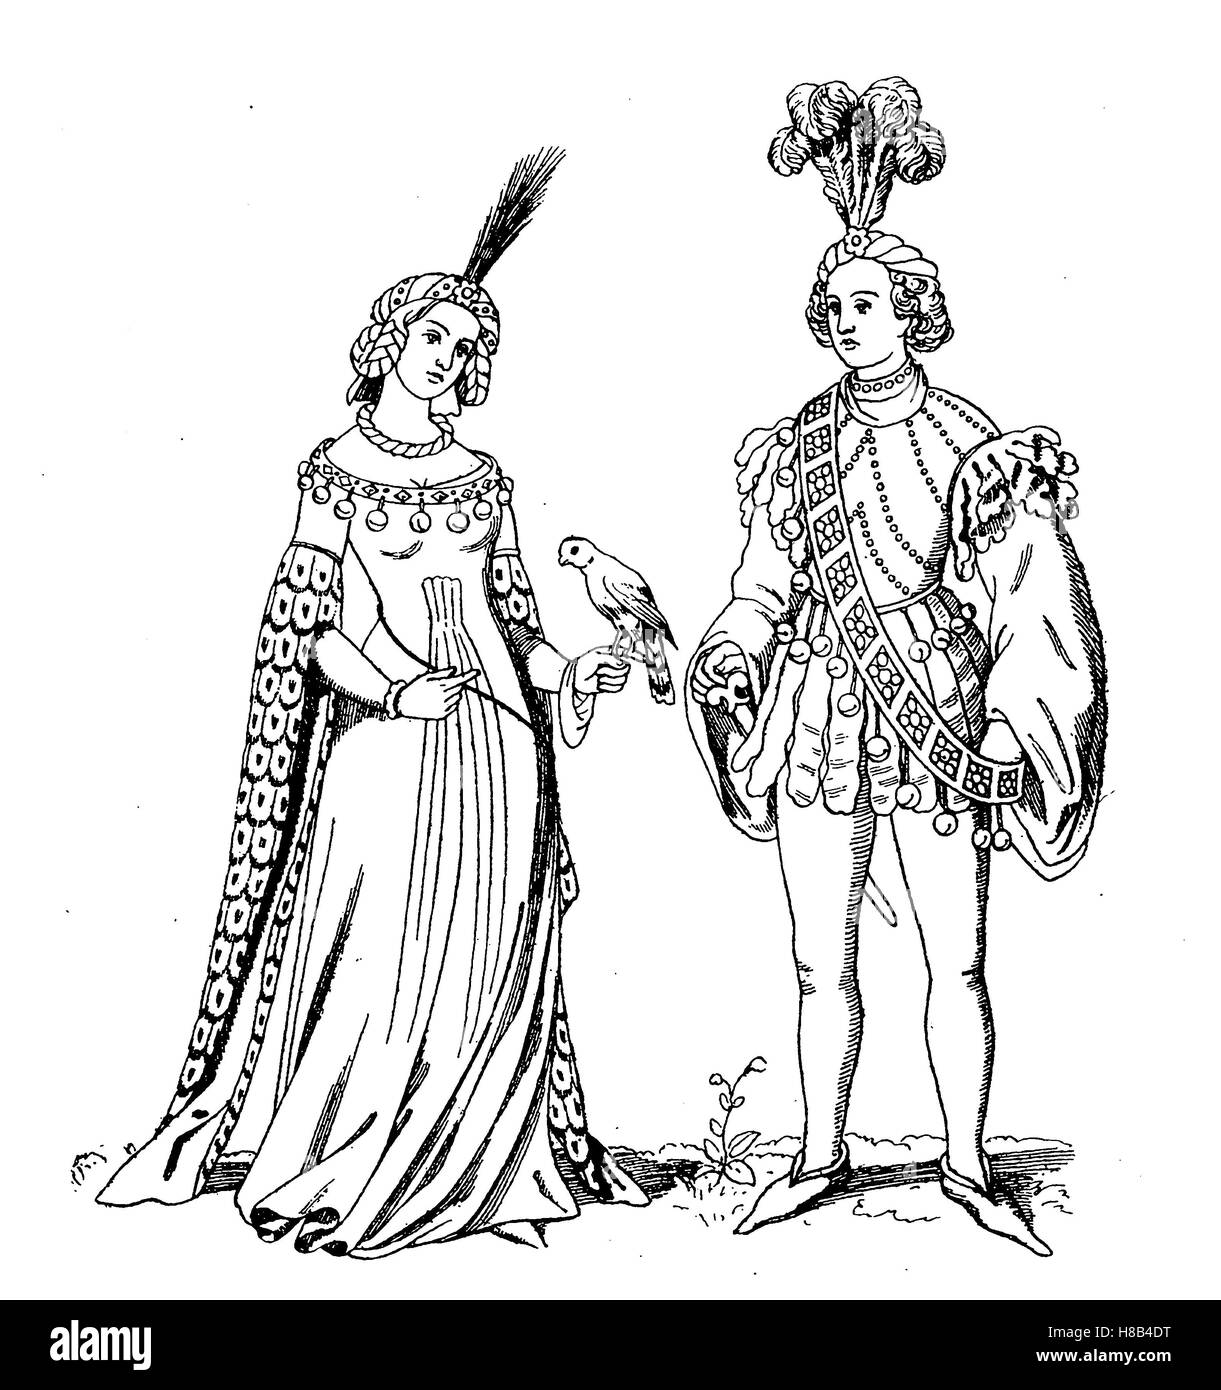 Man and lady in Schellentracht, 1st half of the 15. century, Germany, History of fashion, costume story - Stock Image